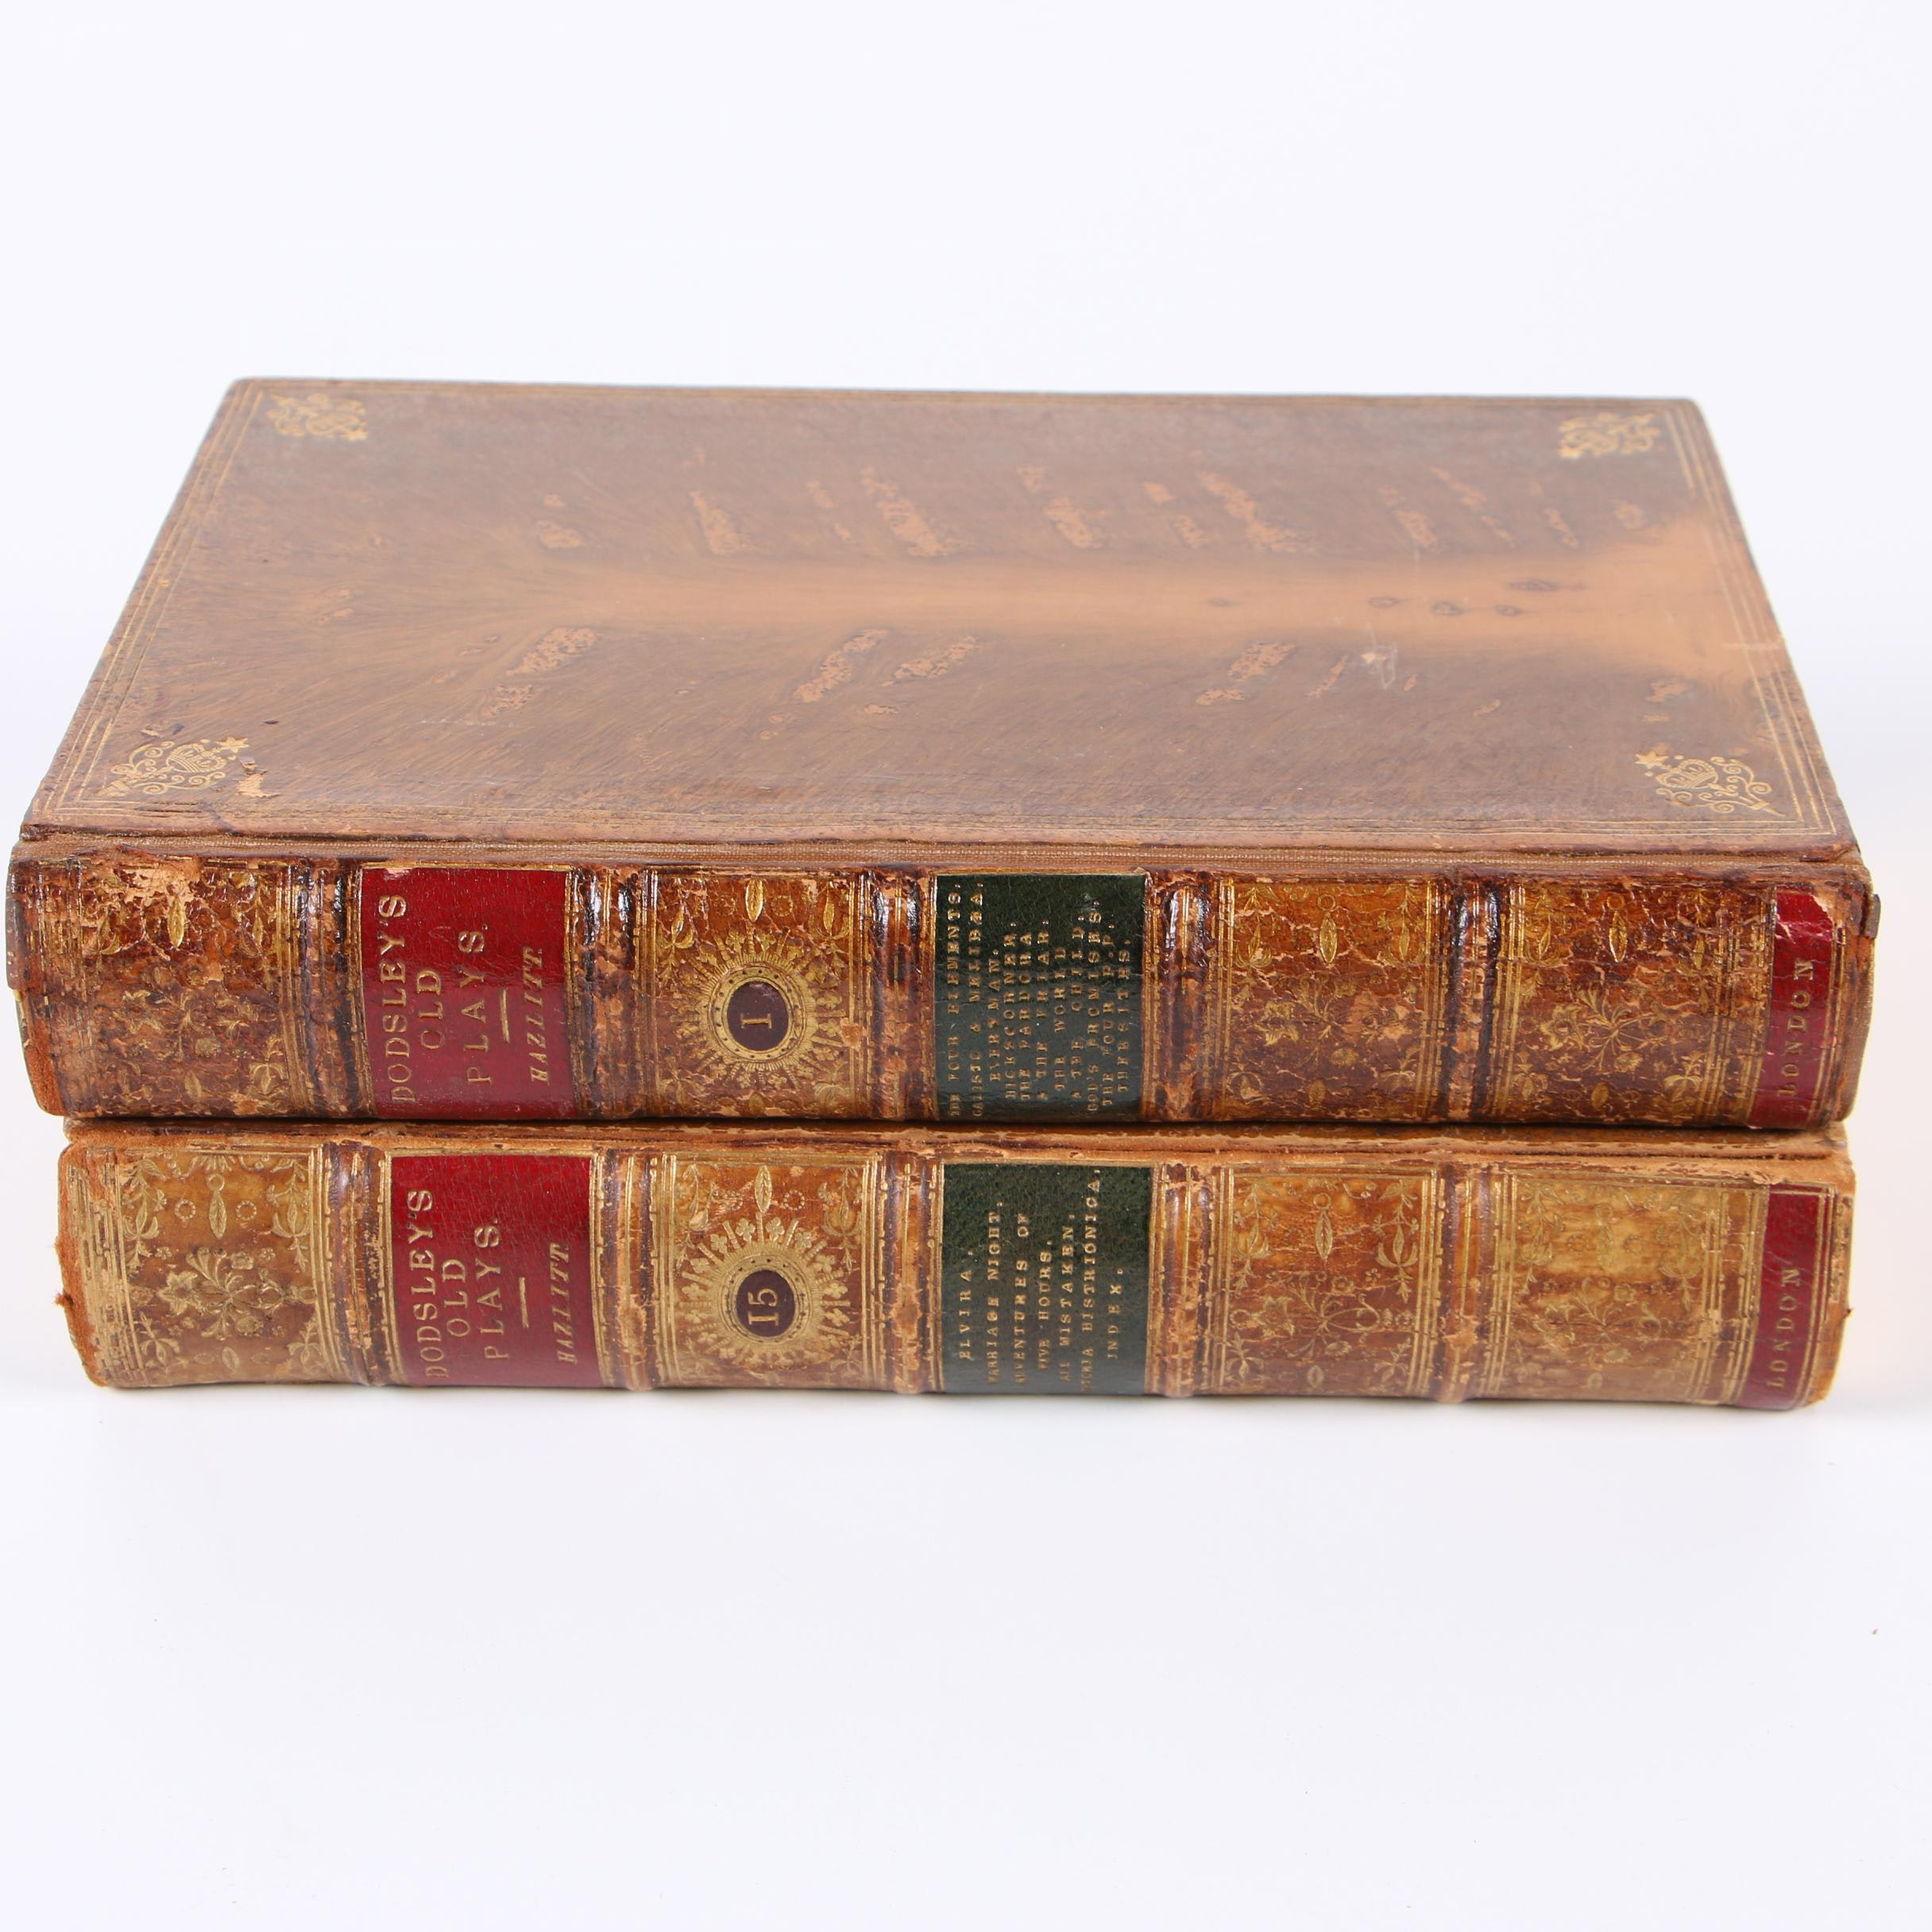 """1874 """"A Select Collection of Old English Plays"""" Vols. I and XV by Hazlitt"""